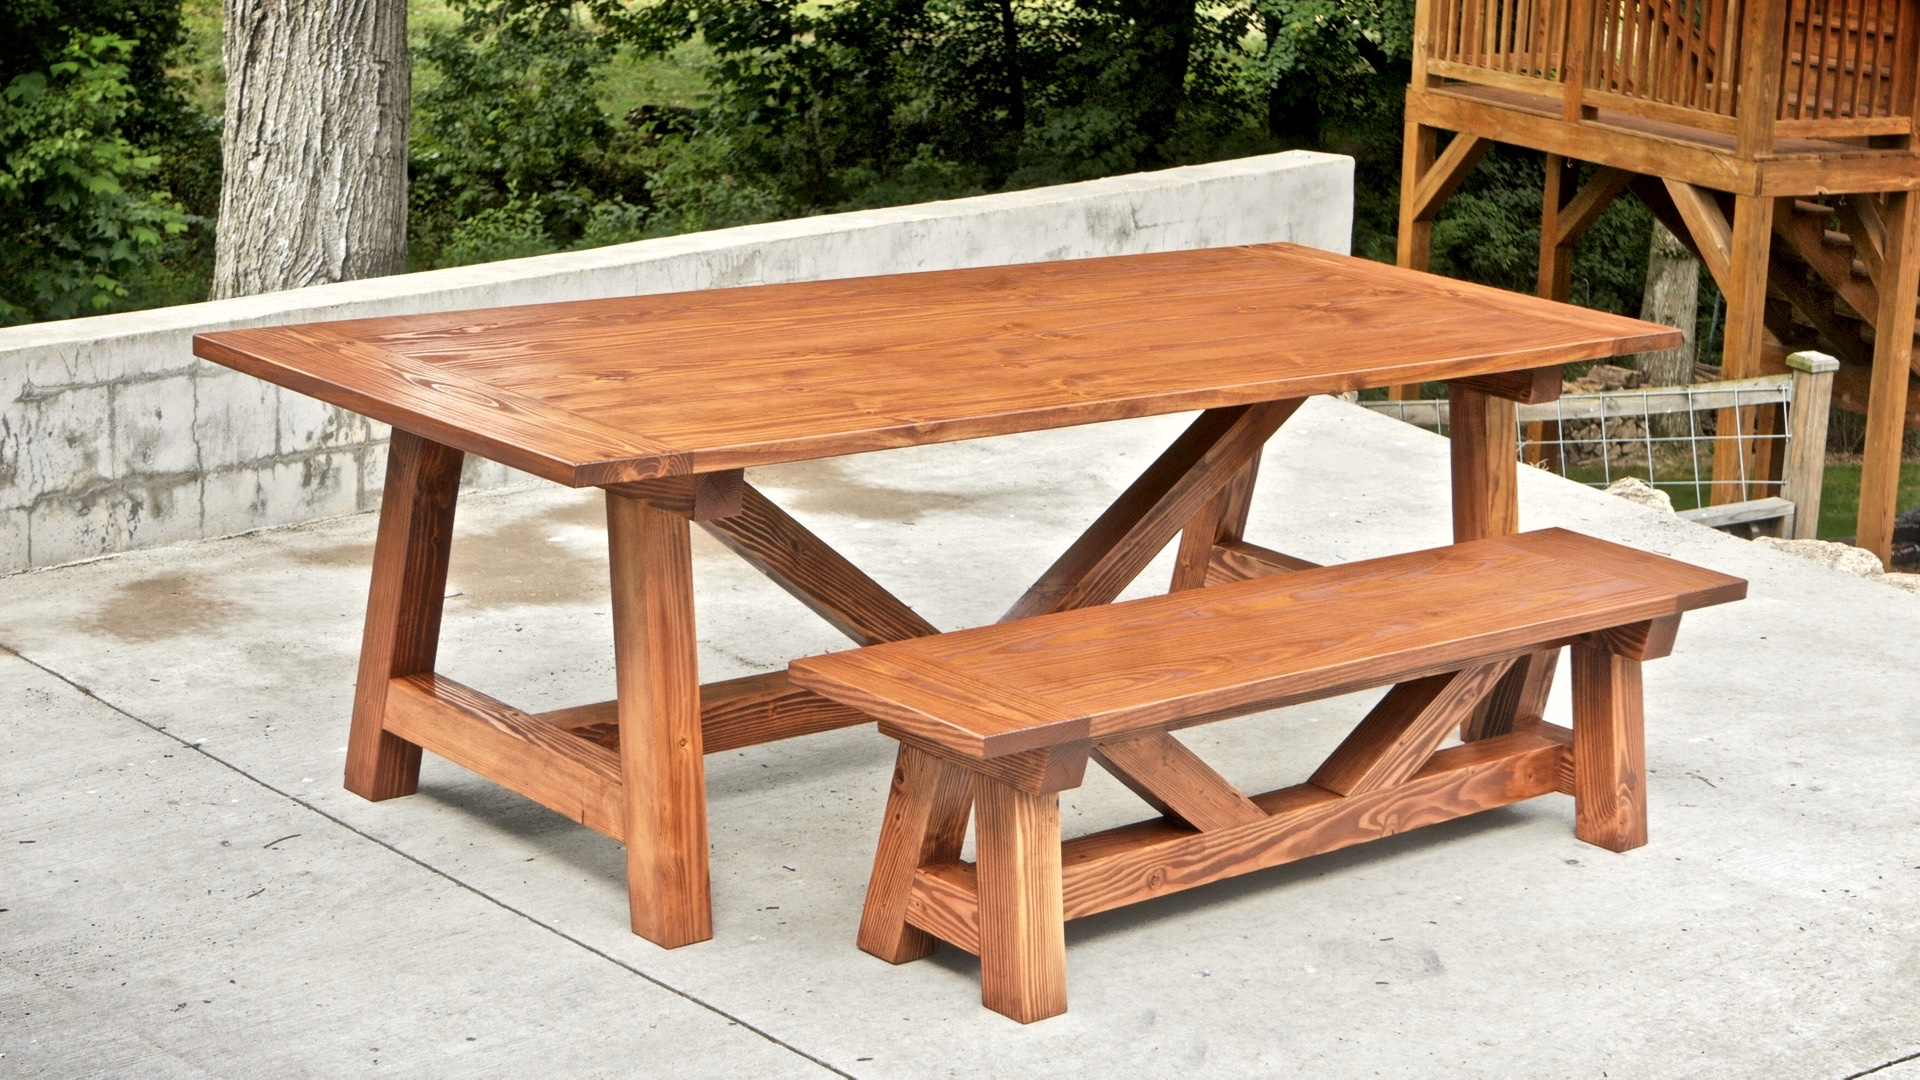 How To Build A Farmhouse Table And Benches For $250 | Woodworking DIY U2014  Crafted Workshop